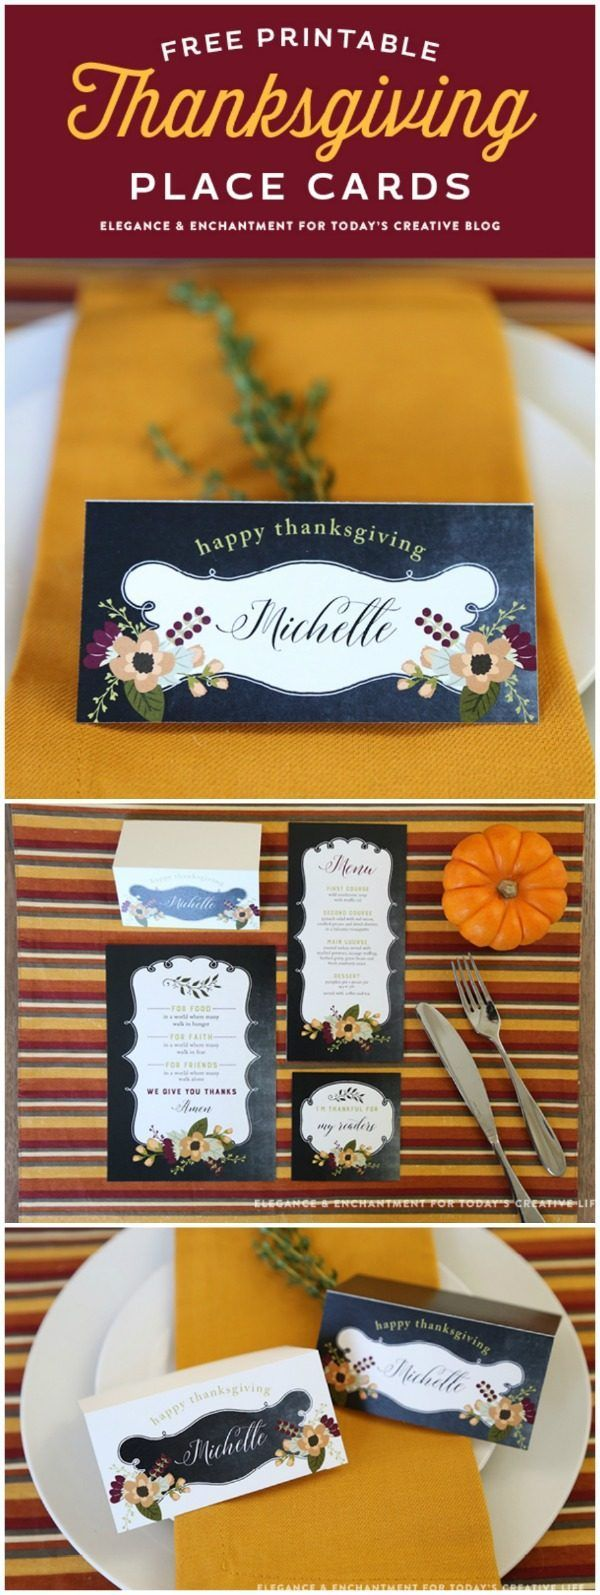 Free Printable Thanksgiving Place Cards | Make Thanksgiving entertaining easy! Decorate an easy Thanksgiving Table with these free printables | Name Cards for Thanksgiving | Get your free download on TodaysCreativeLife.com